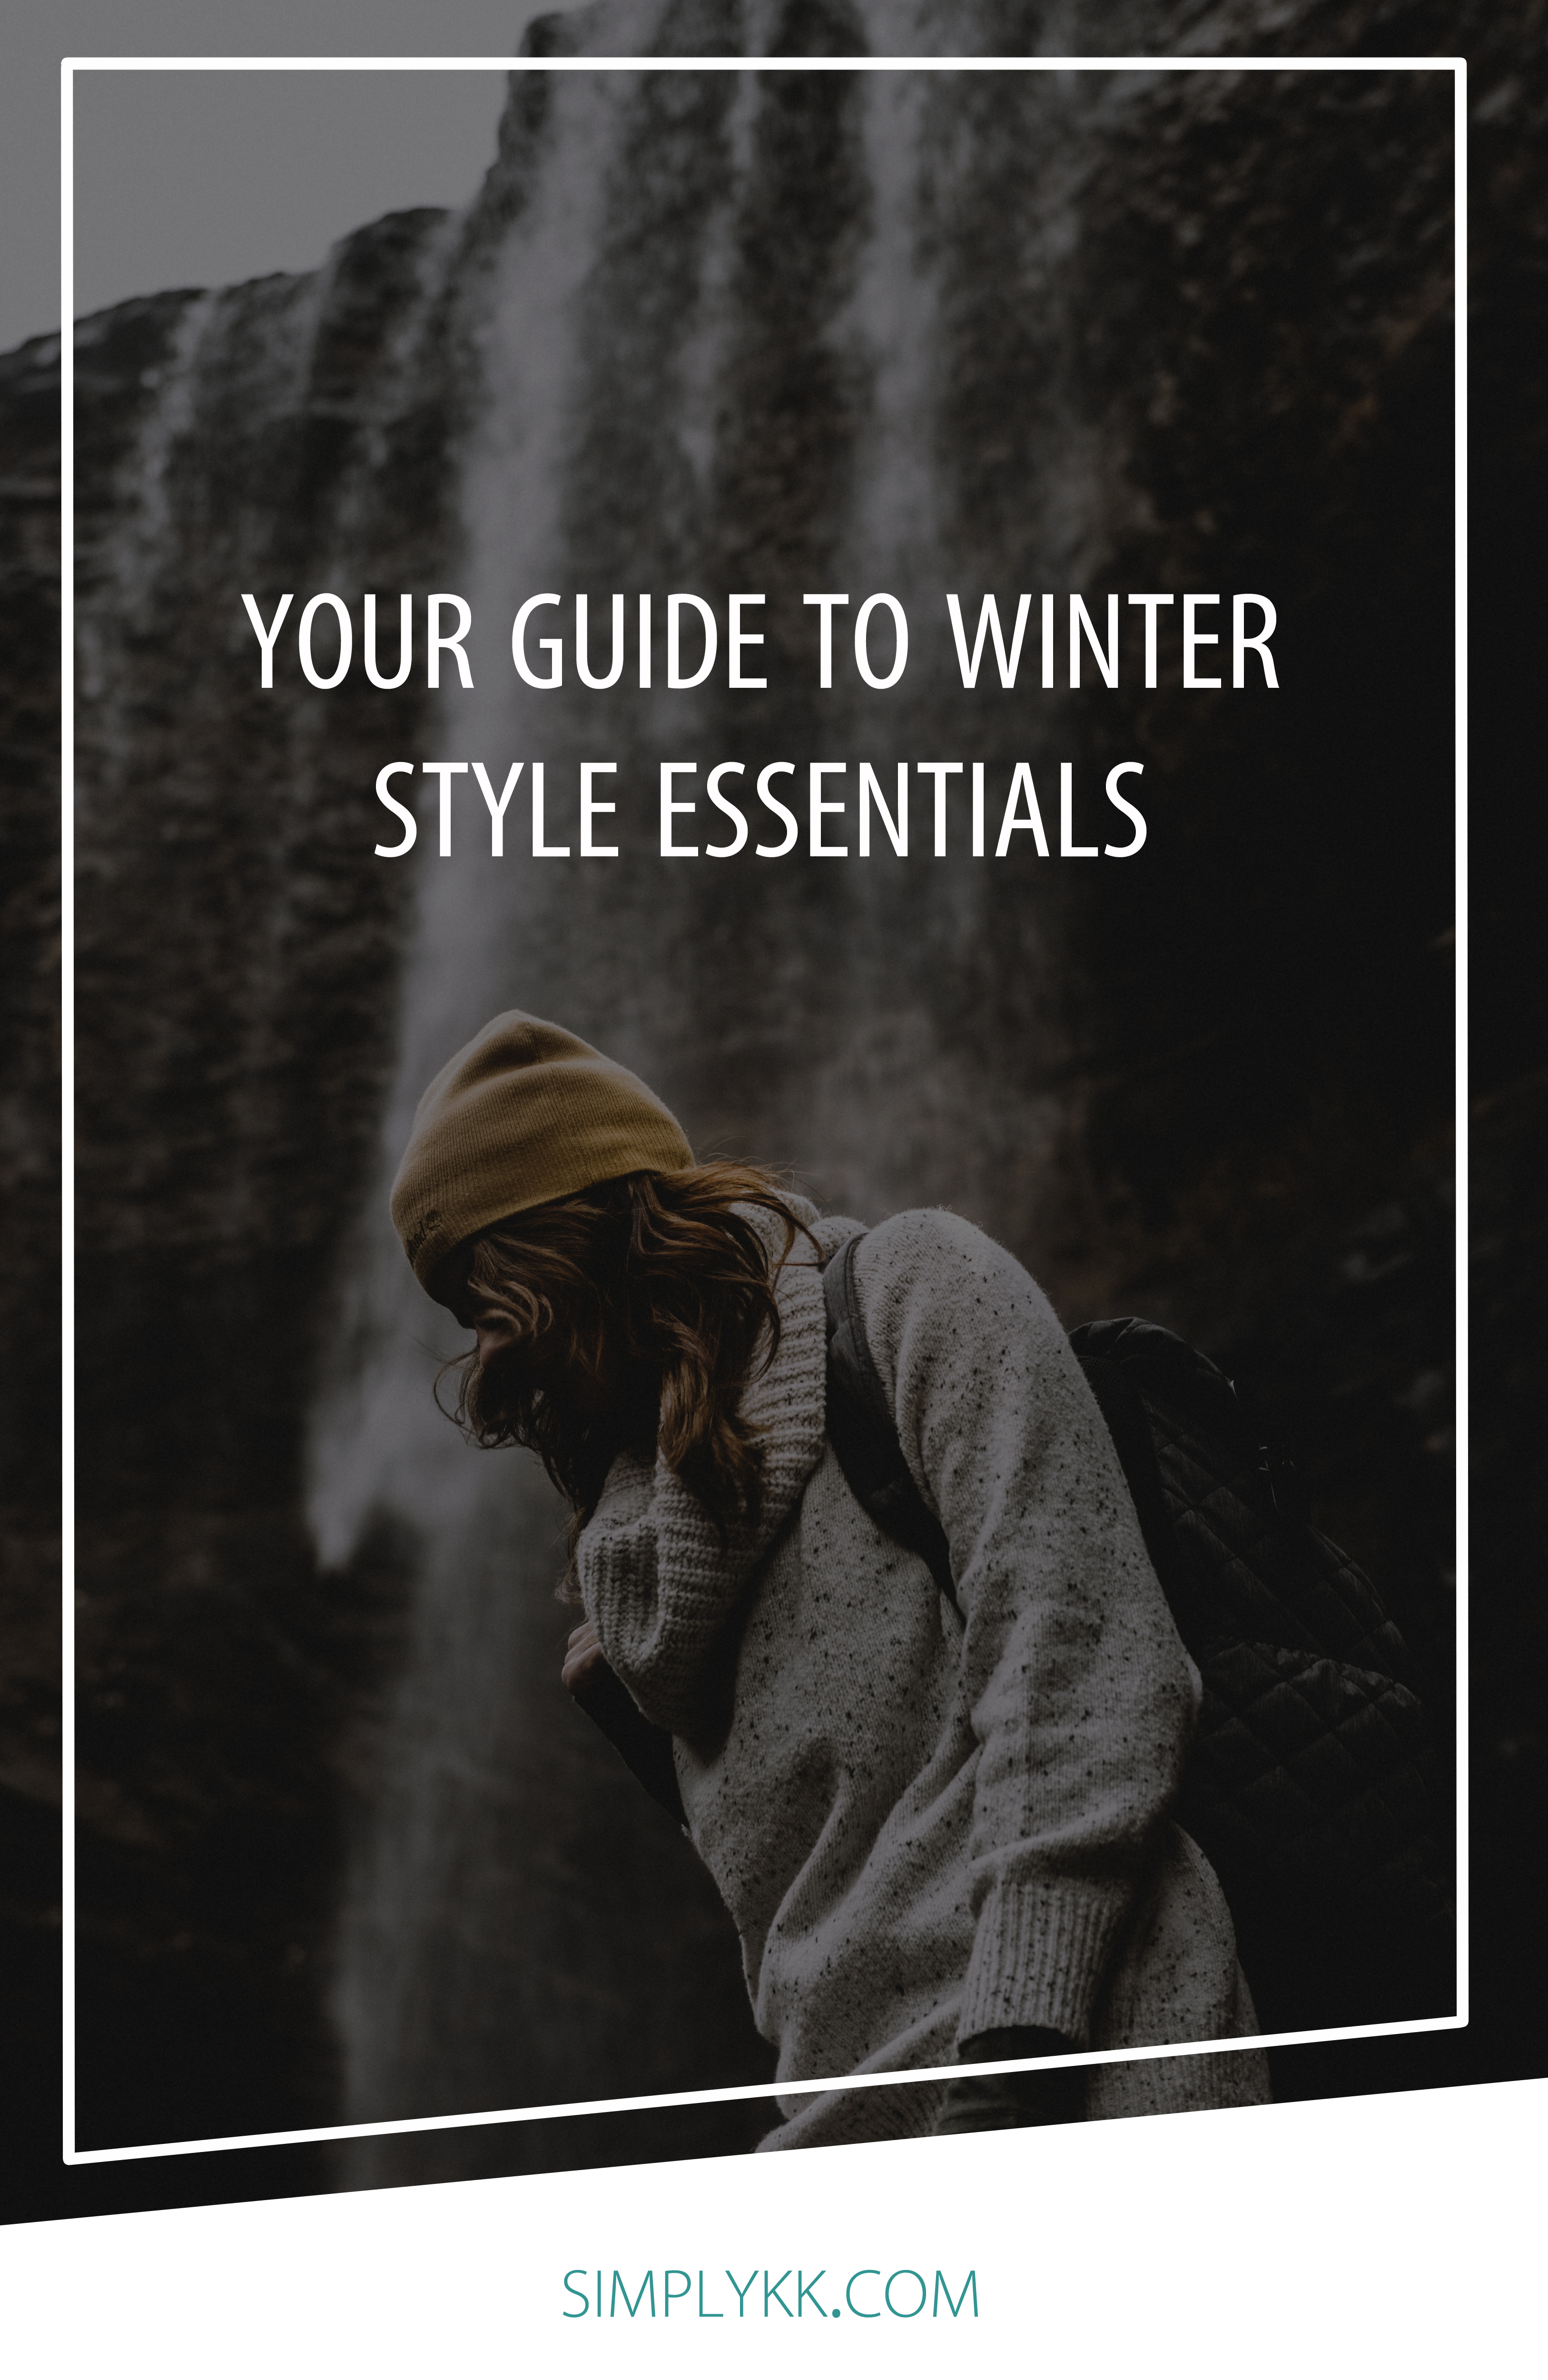 Your Guide to Winter Style Essentials